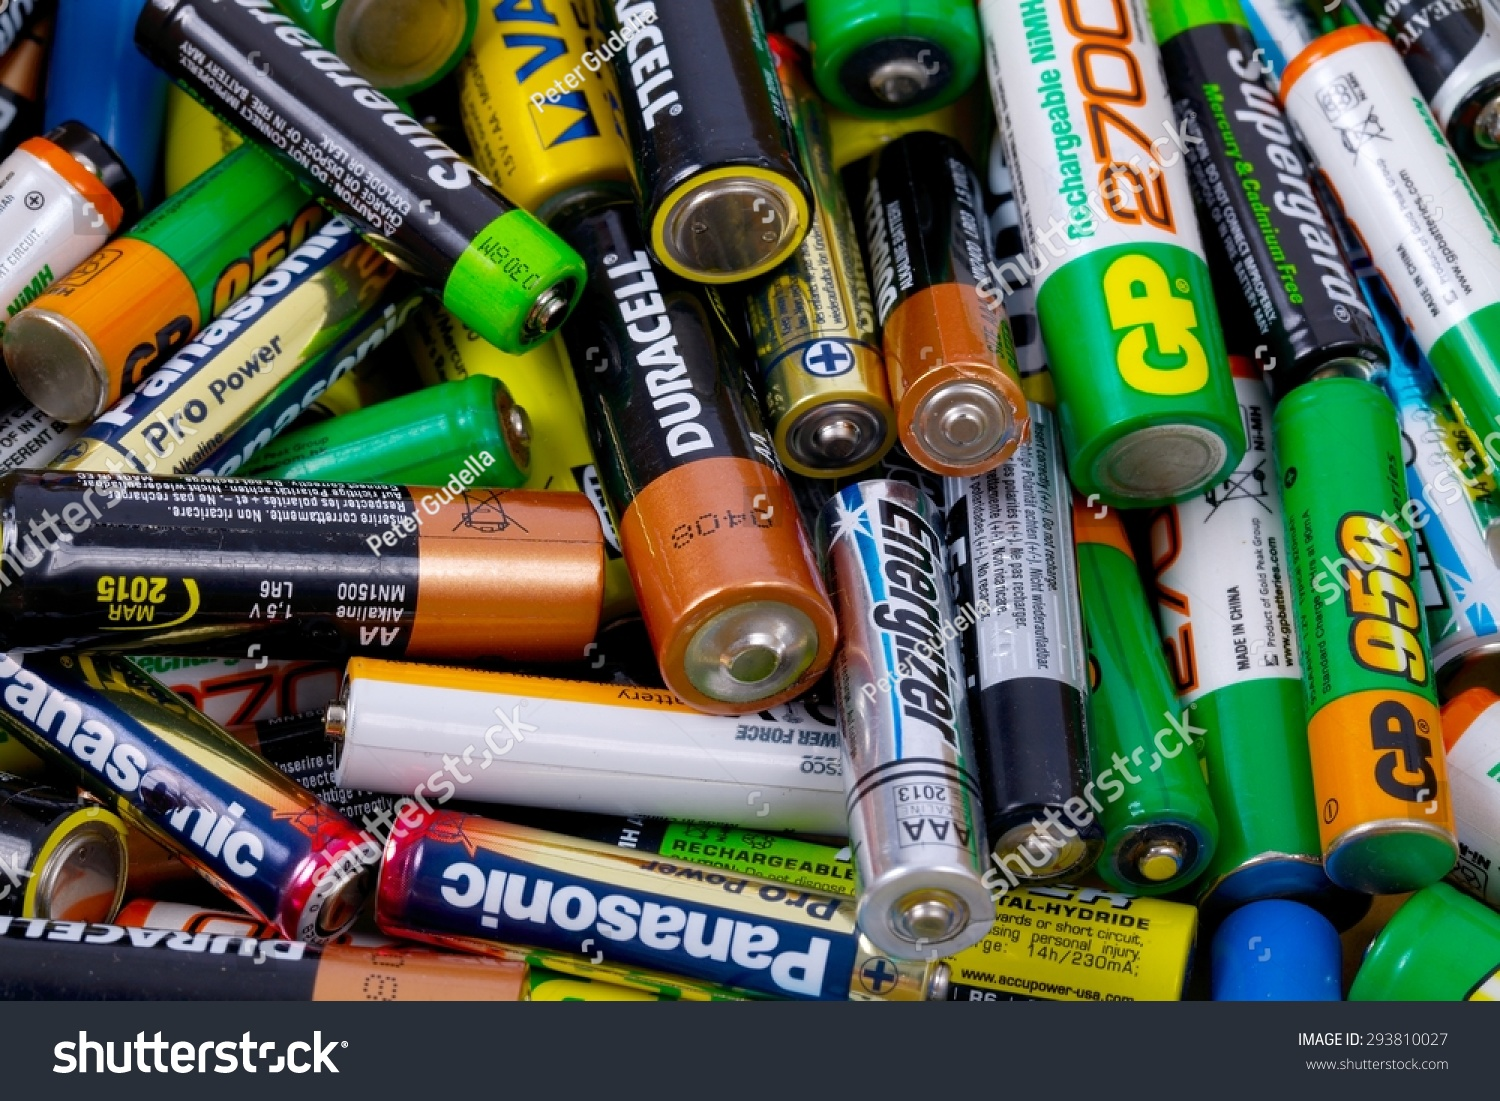 budapest hungary may 22 2015 many used aa and aaa sized batteries in a pile stock photo. Black Bedroom Furniture Sets. Home Design Ideas